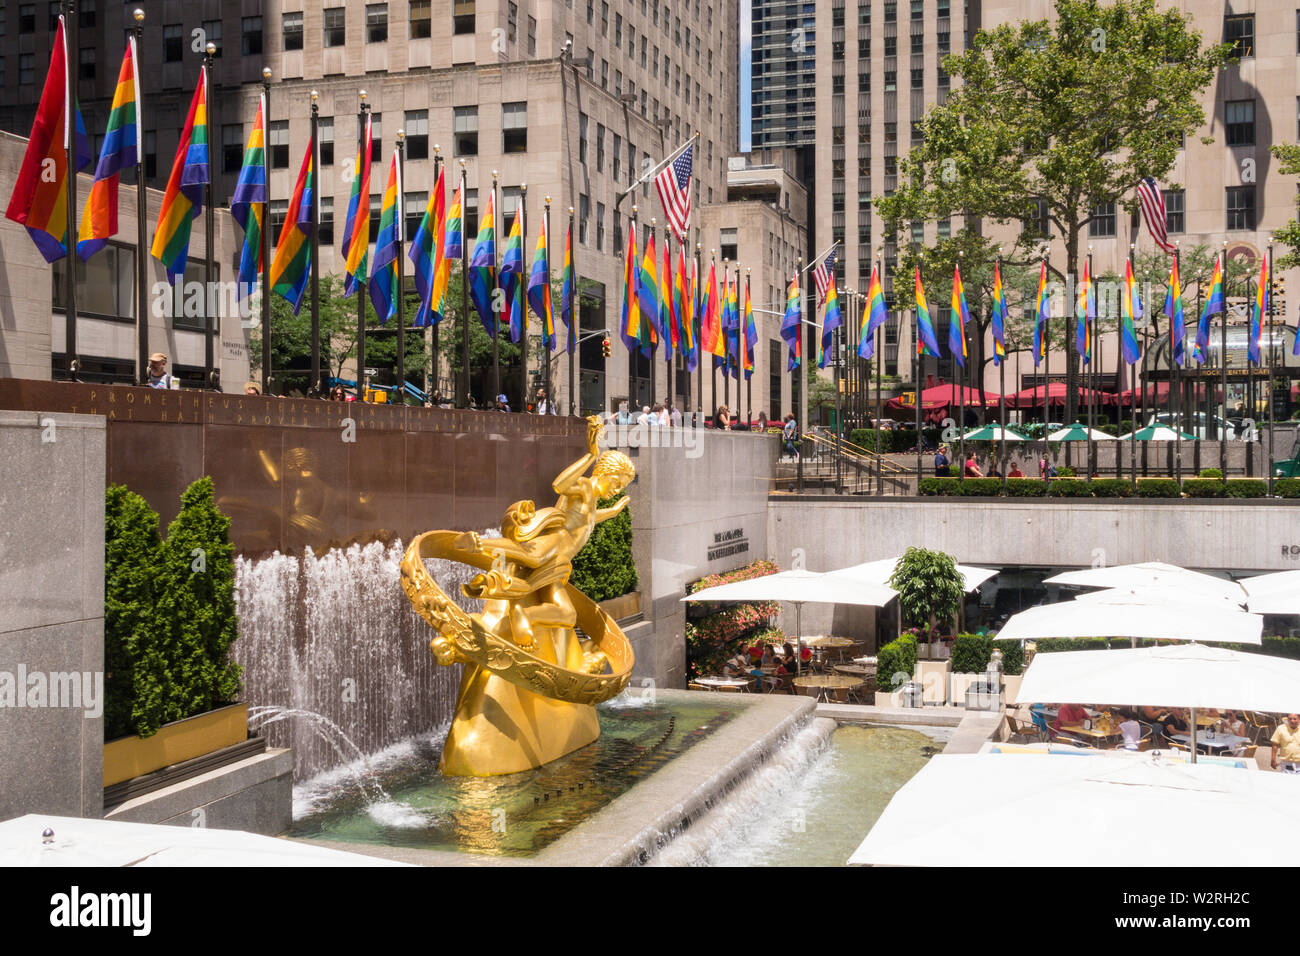 Rainbow color flags celebrate WorldPride at Rockefeller Center Plaza, NYC, USA Stock Photo